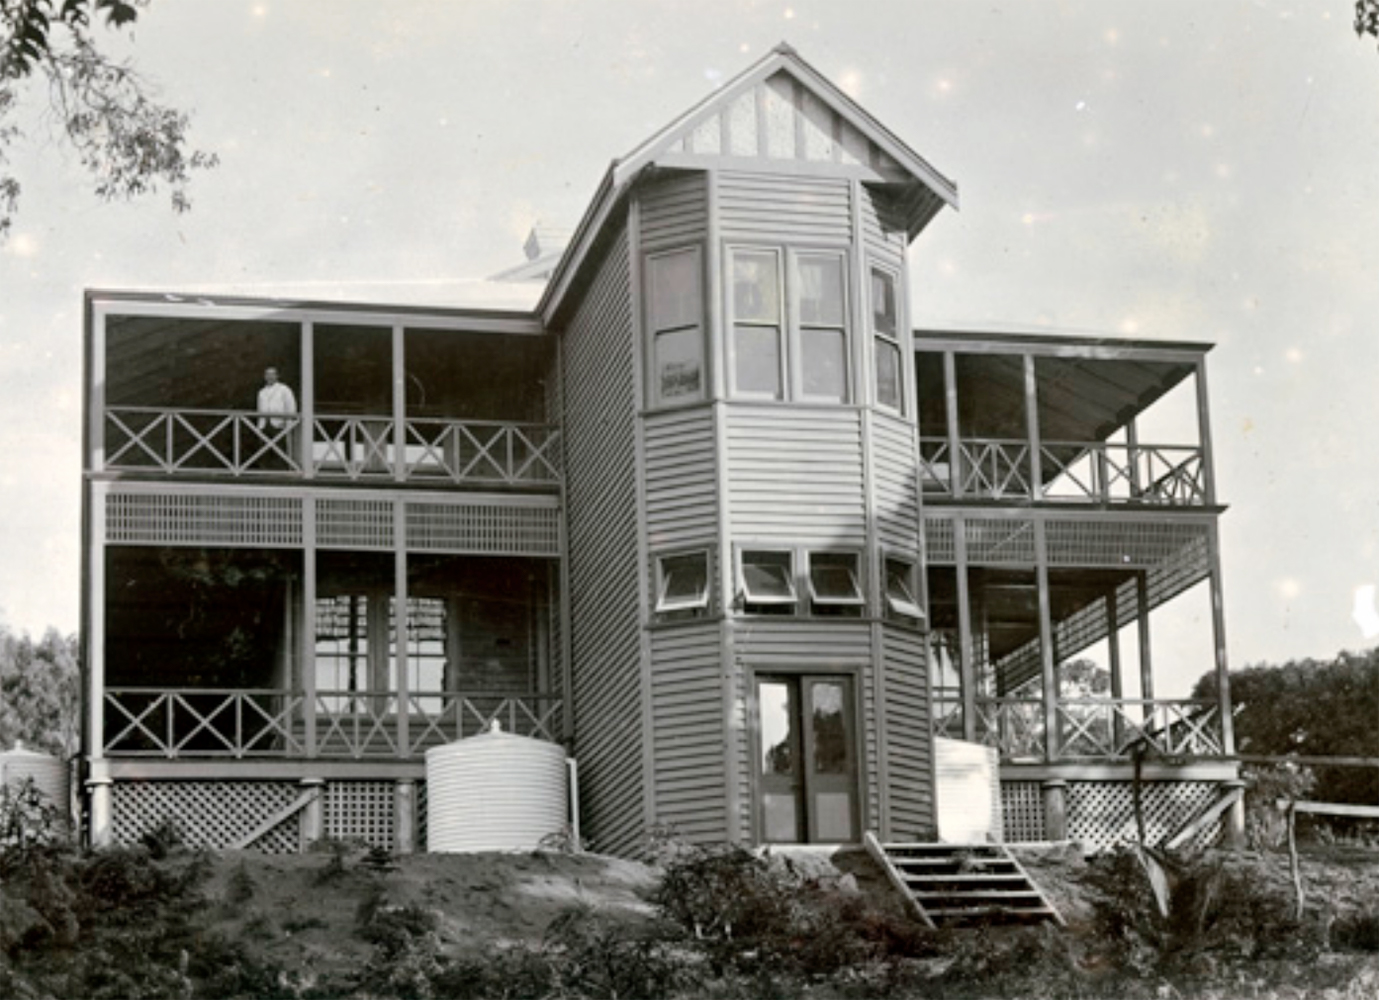 The original Caves House, Yallingup.    Opened in January 1903, it was a popular honeymoon destination for motoring newlyweds. This wing suffered extensive fire damage in 1930. Courtesy State Library of Western Australia.